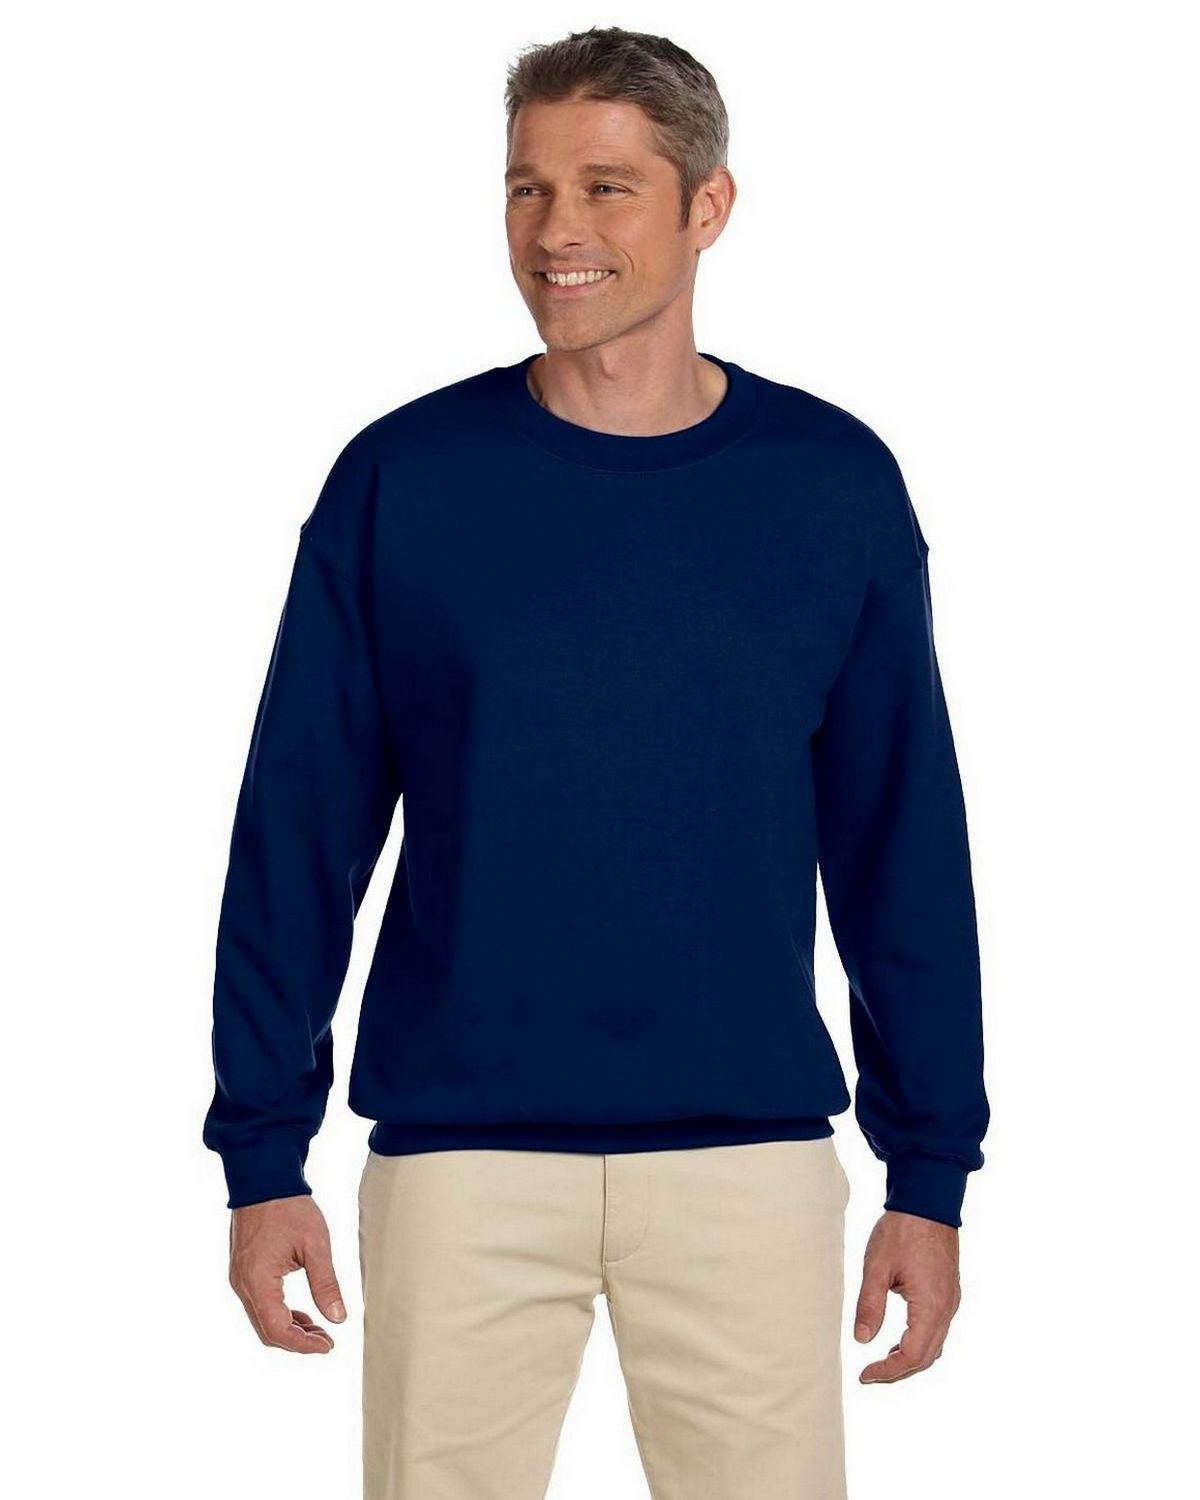 Gildan Mens 8 Oz Heavy Blend 50/50 Fleece Crew G180 -Navy L G180